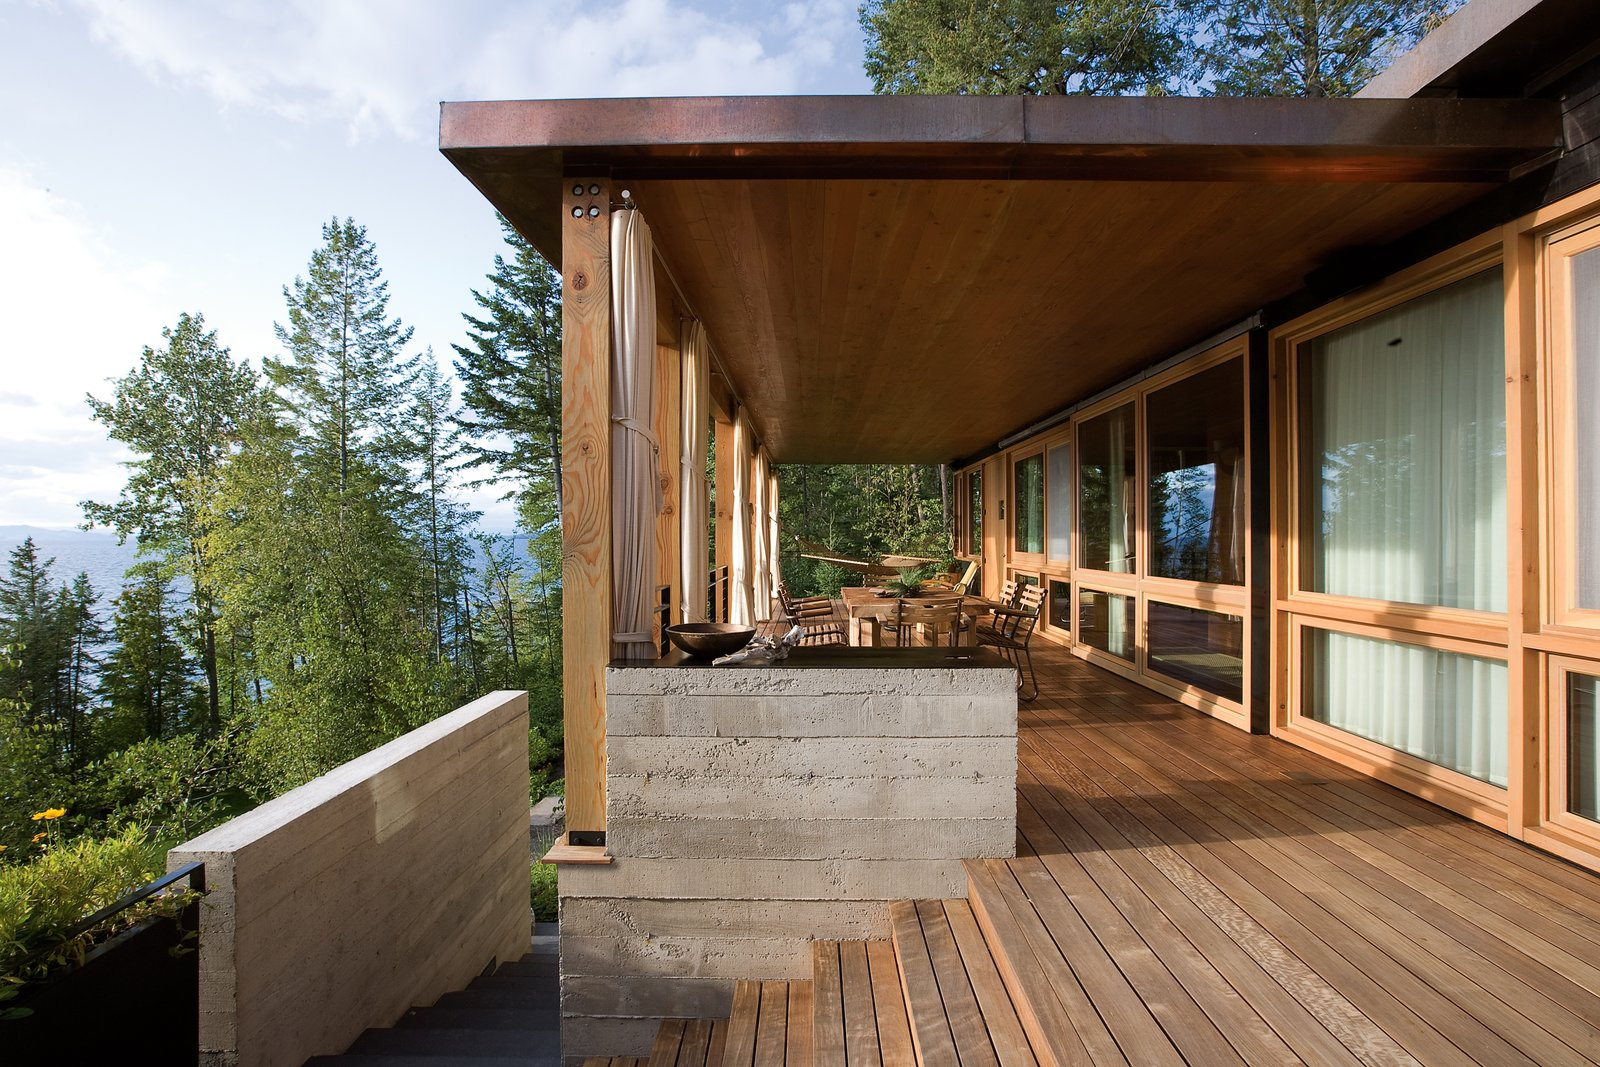 Outdoor, Trees, Concrete, Large, Wood, Wood, and Side Yard The floors and decking are all made from long-lasting, rot-resistant ipe wood.  Best Outdoor Concrete Wood Photos from Stacked-Wood Walls Tie This Eco-Friendly Camp to the Montana Landscape